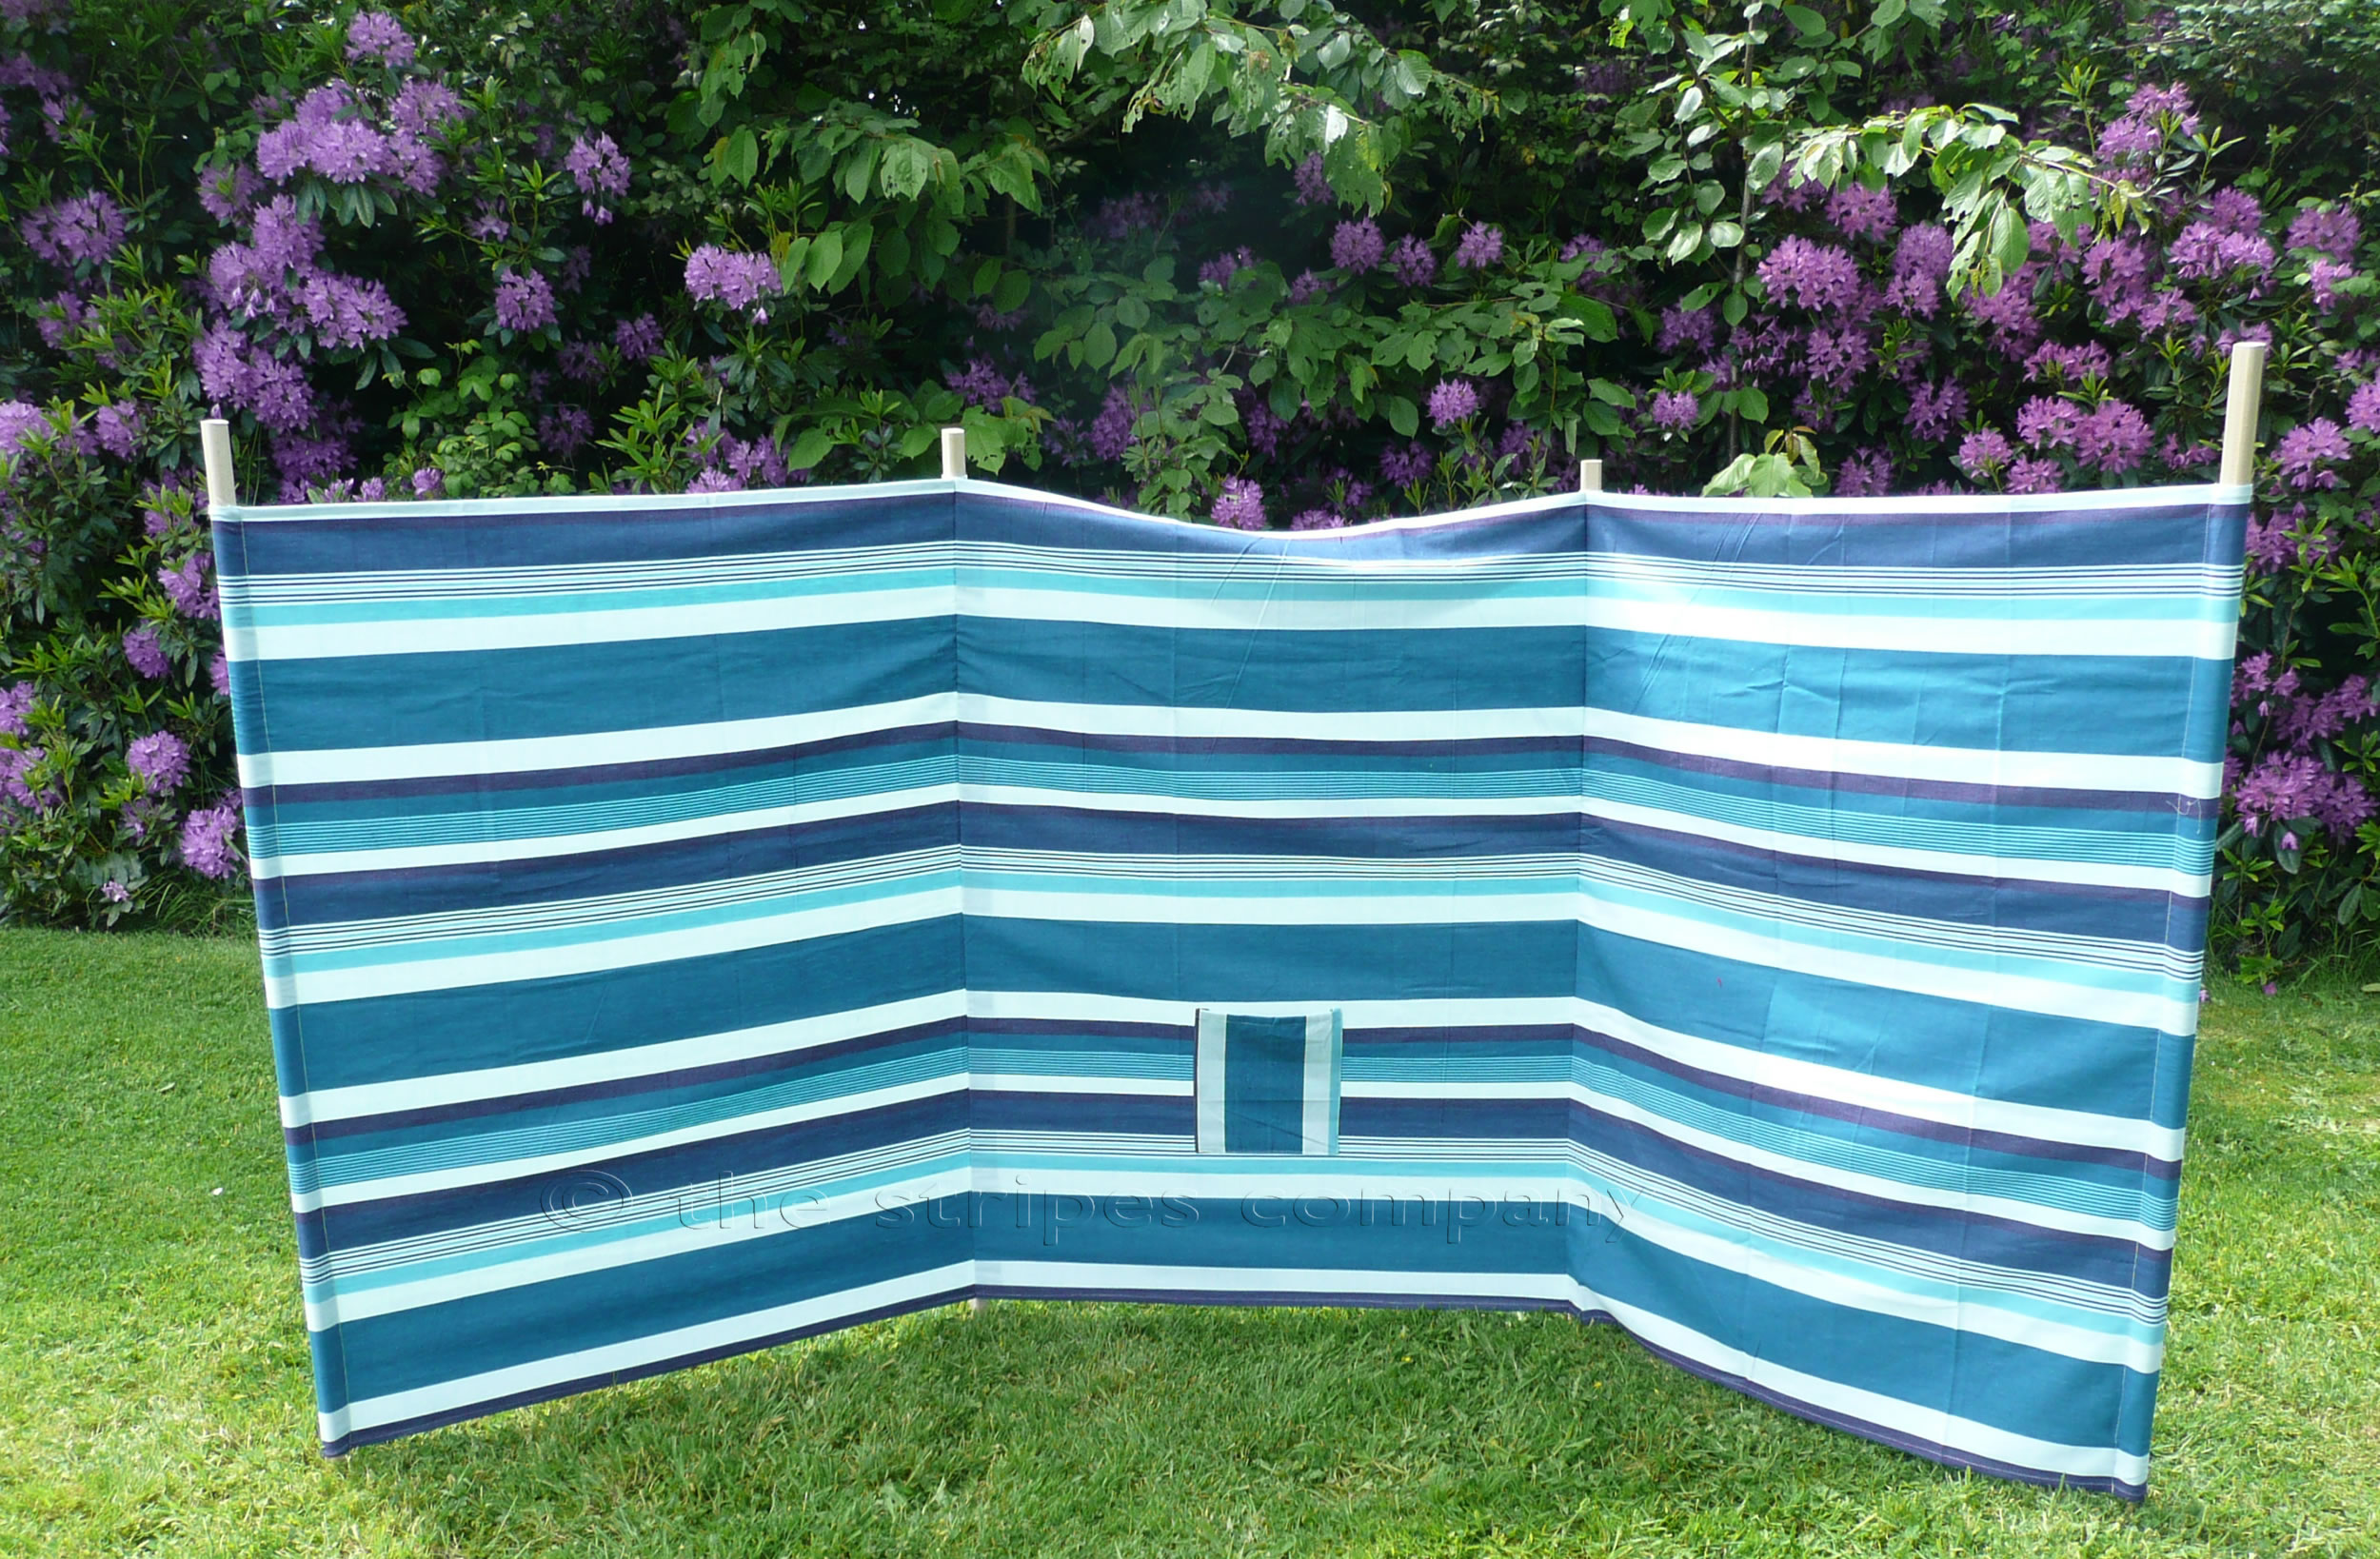 Beach Windbreaks sea green, aquamarine, french navy stripes